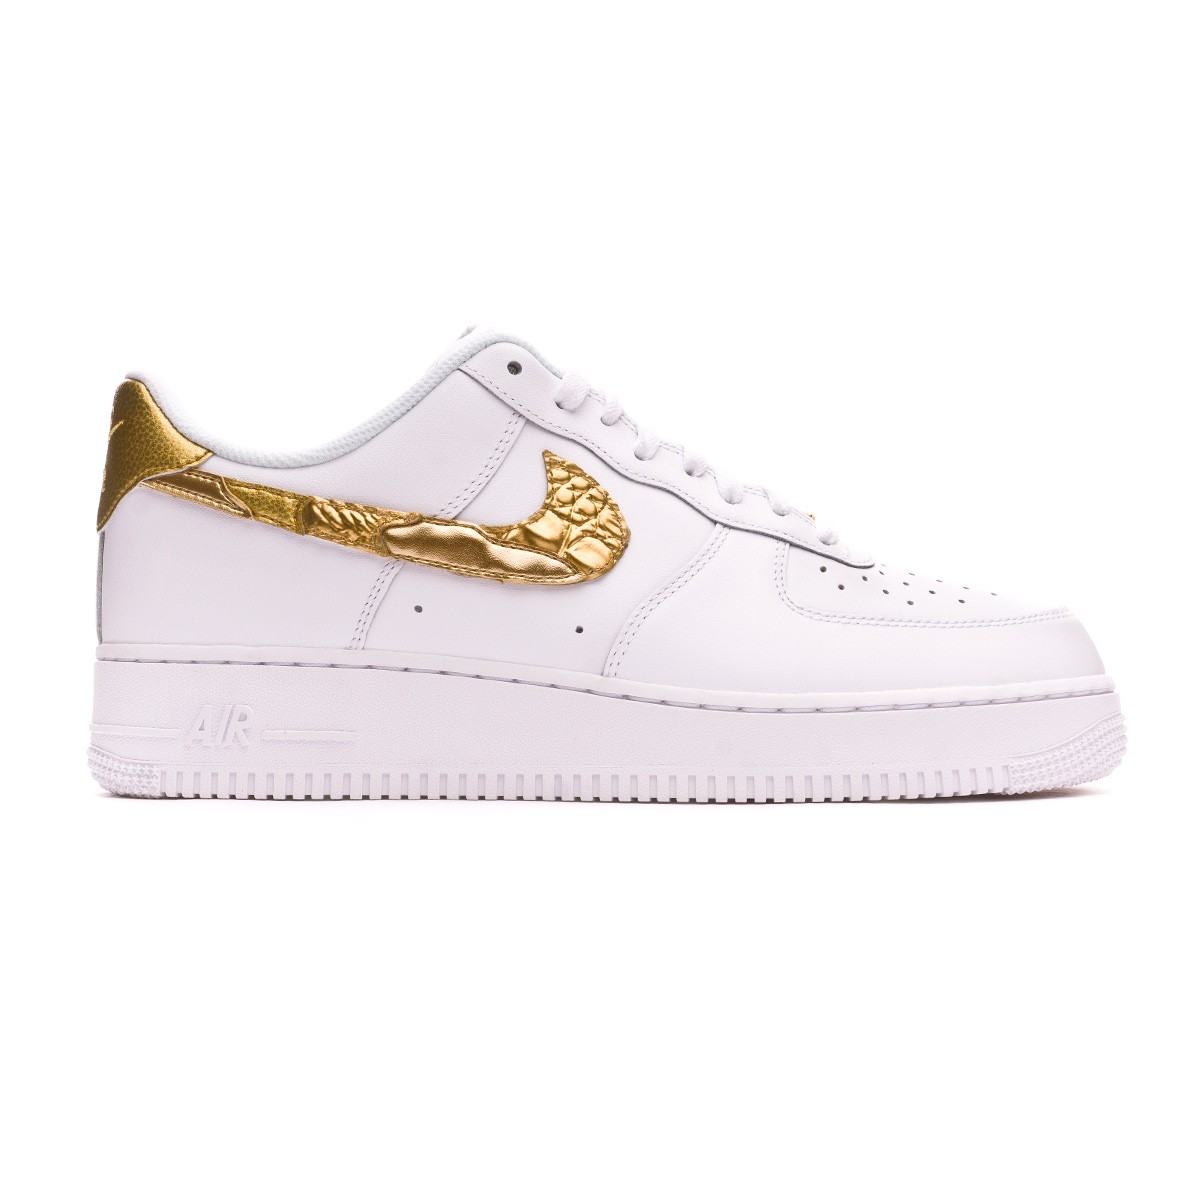 2b59554525b Football Boot Nike Air Force 1 2007 CR7 - Limited Edition White-Metallic  gold - Tienda de fútbol Fútbol Emotion